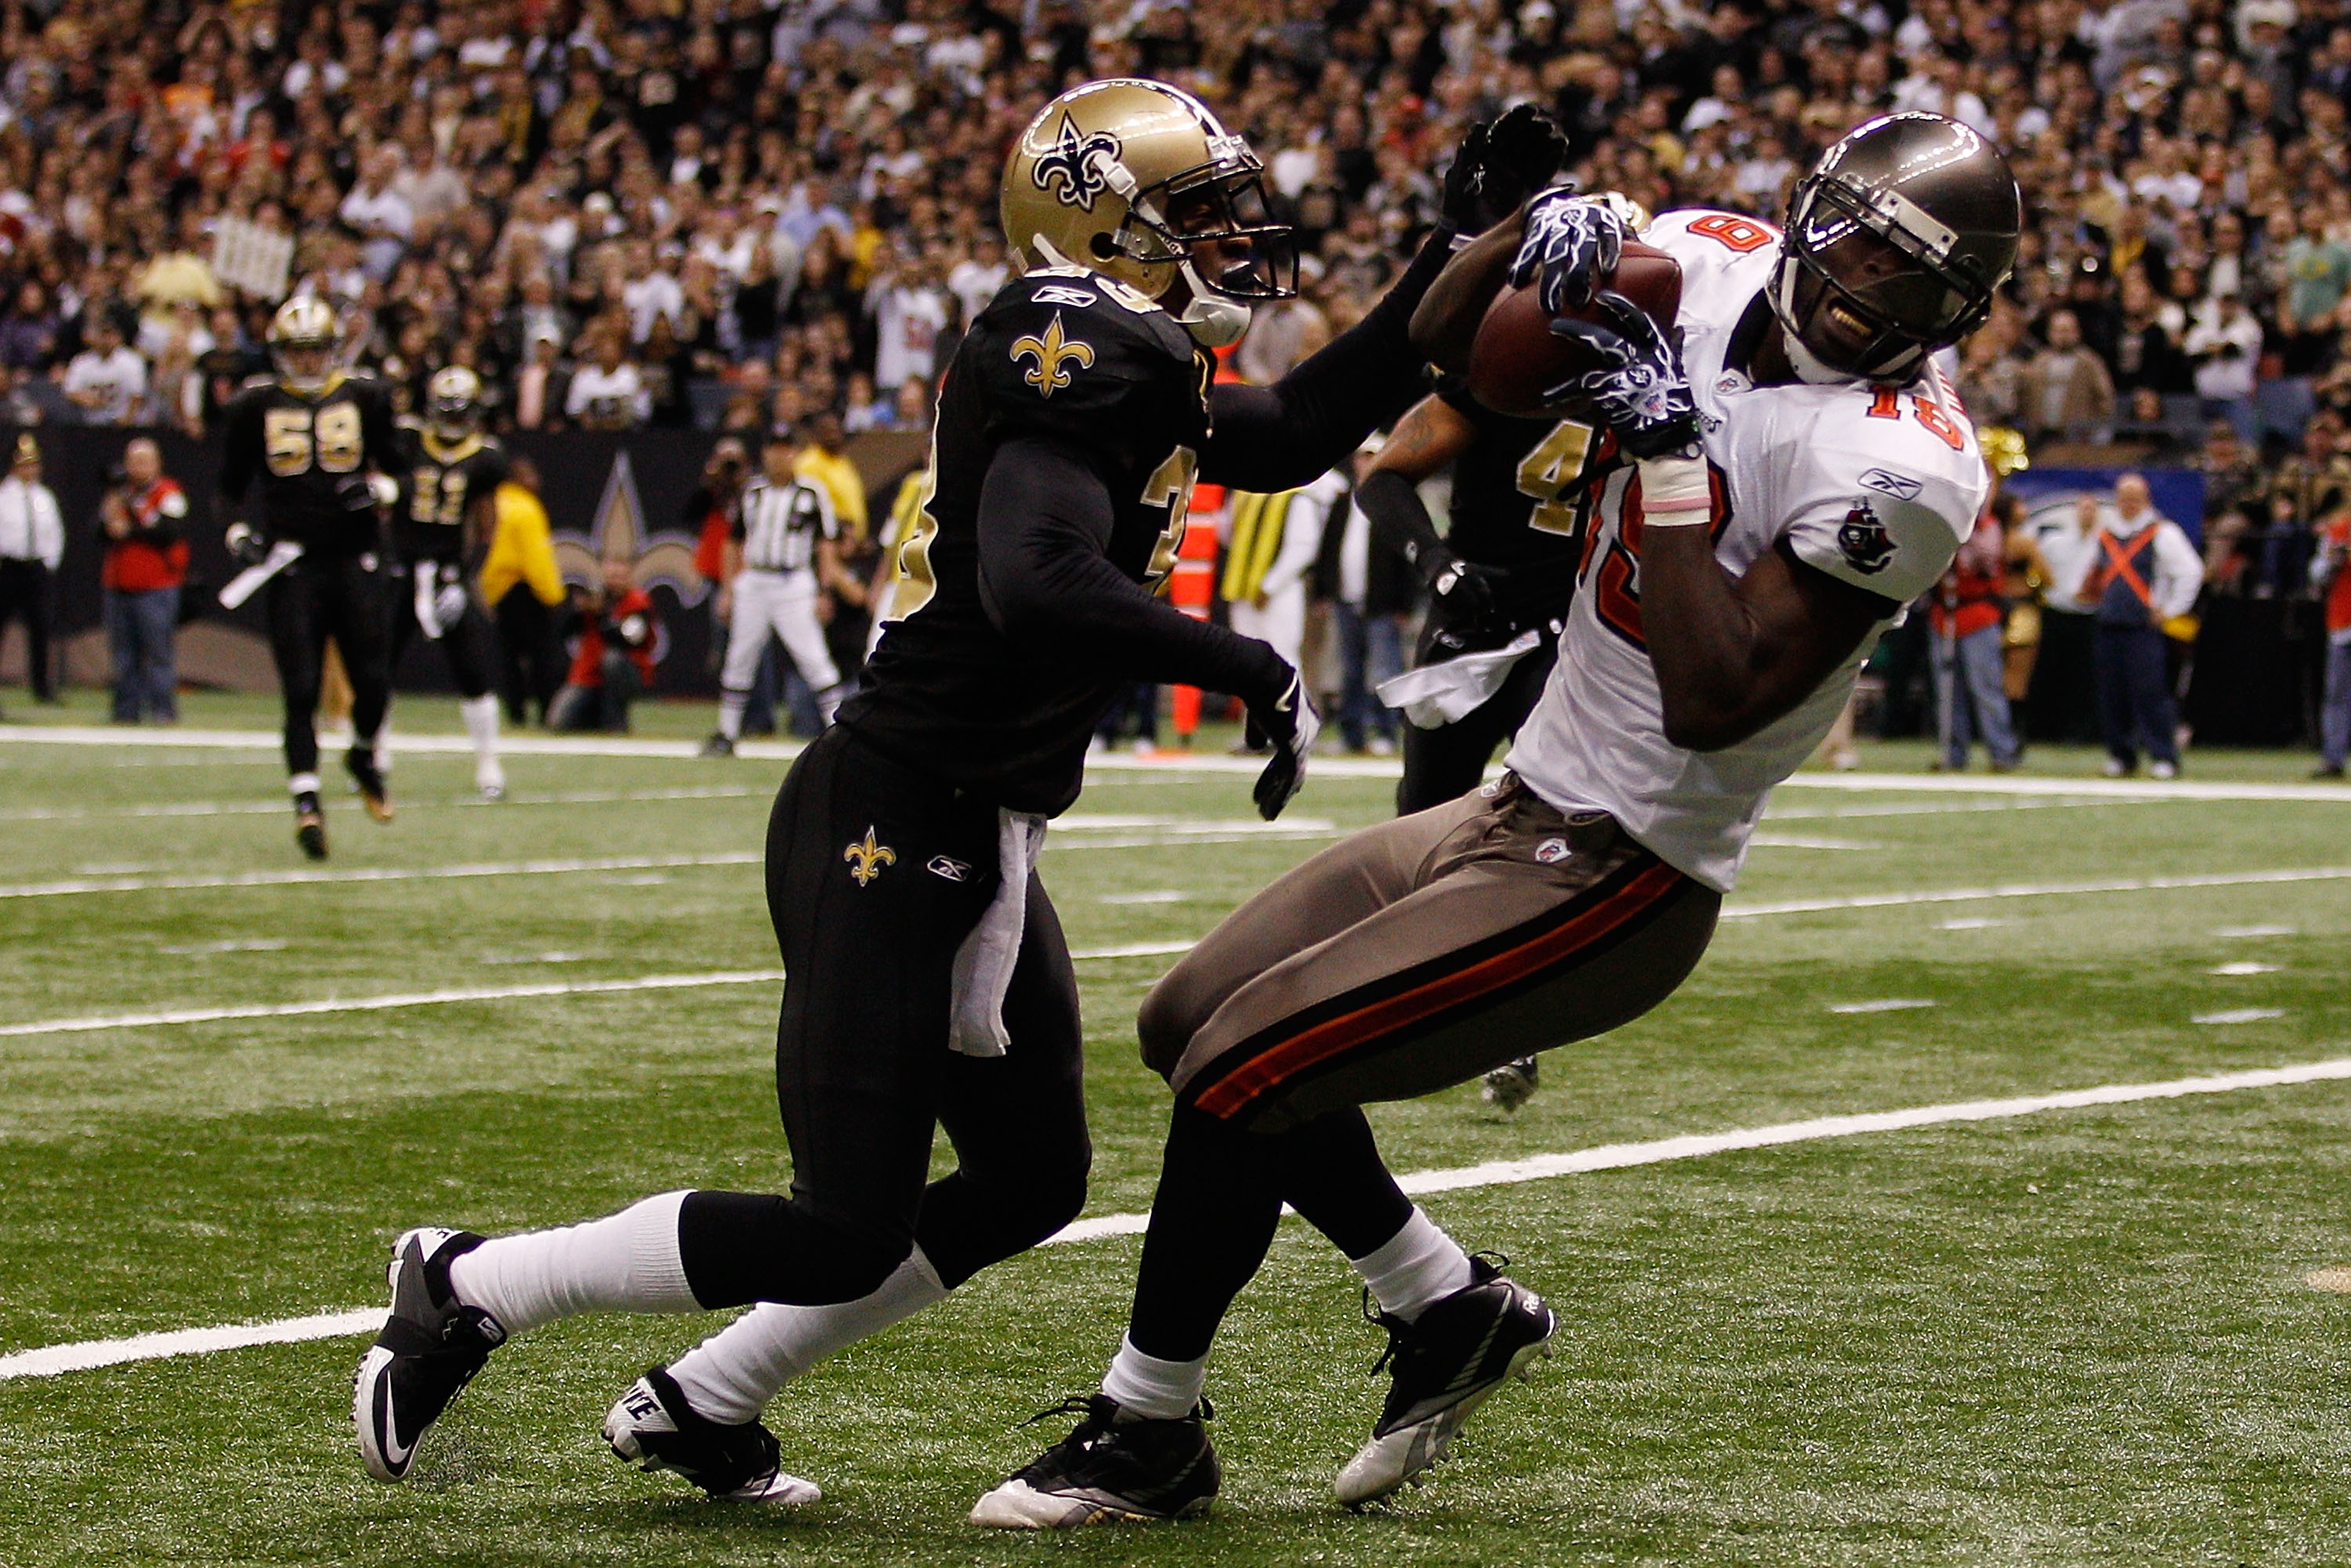 NEW ORLEANS, LA - JANUARY 02:  Mike Williams #19 of the Tampa Bay Buccaneers catches a touchdown pass over Jabari Greer #33 of the New Orleans Saints at the Louisiana Superdome on January 2, 2011 in New Orleans, Louisiana.  The Buccaneers defeated the Sai